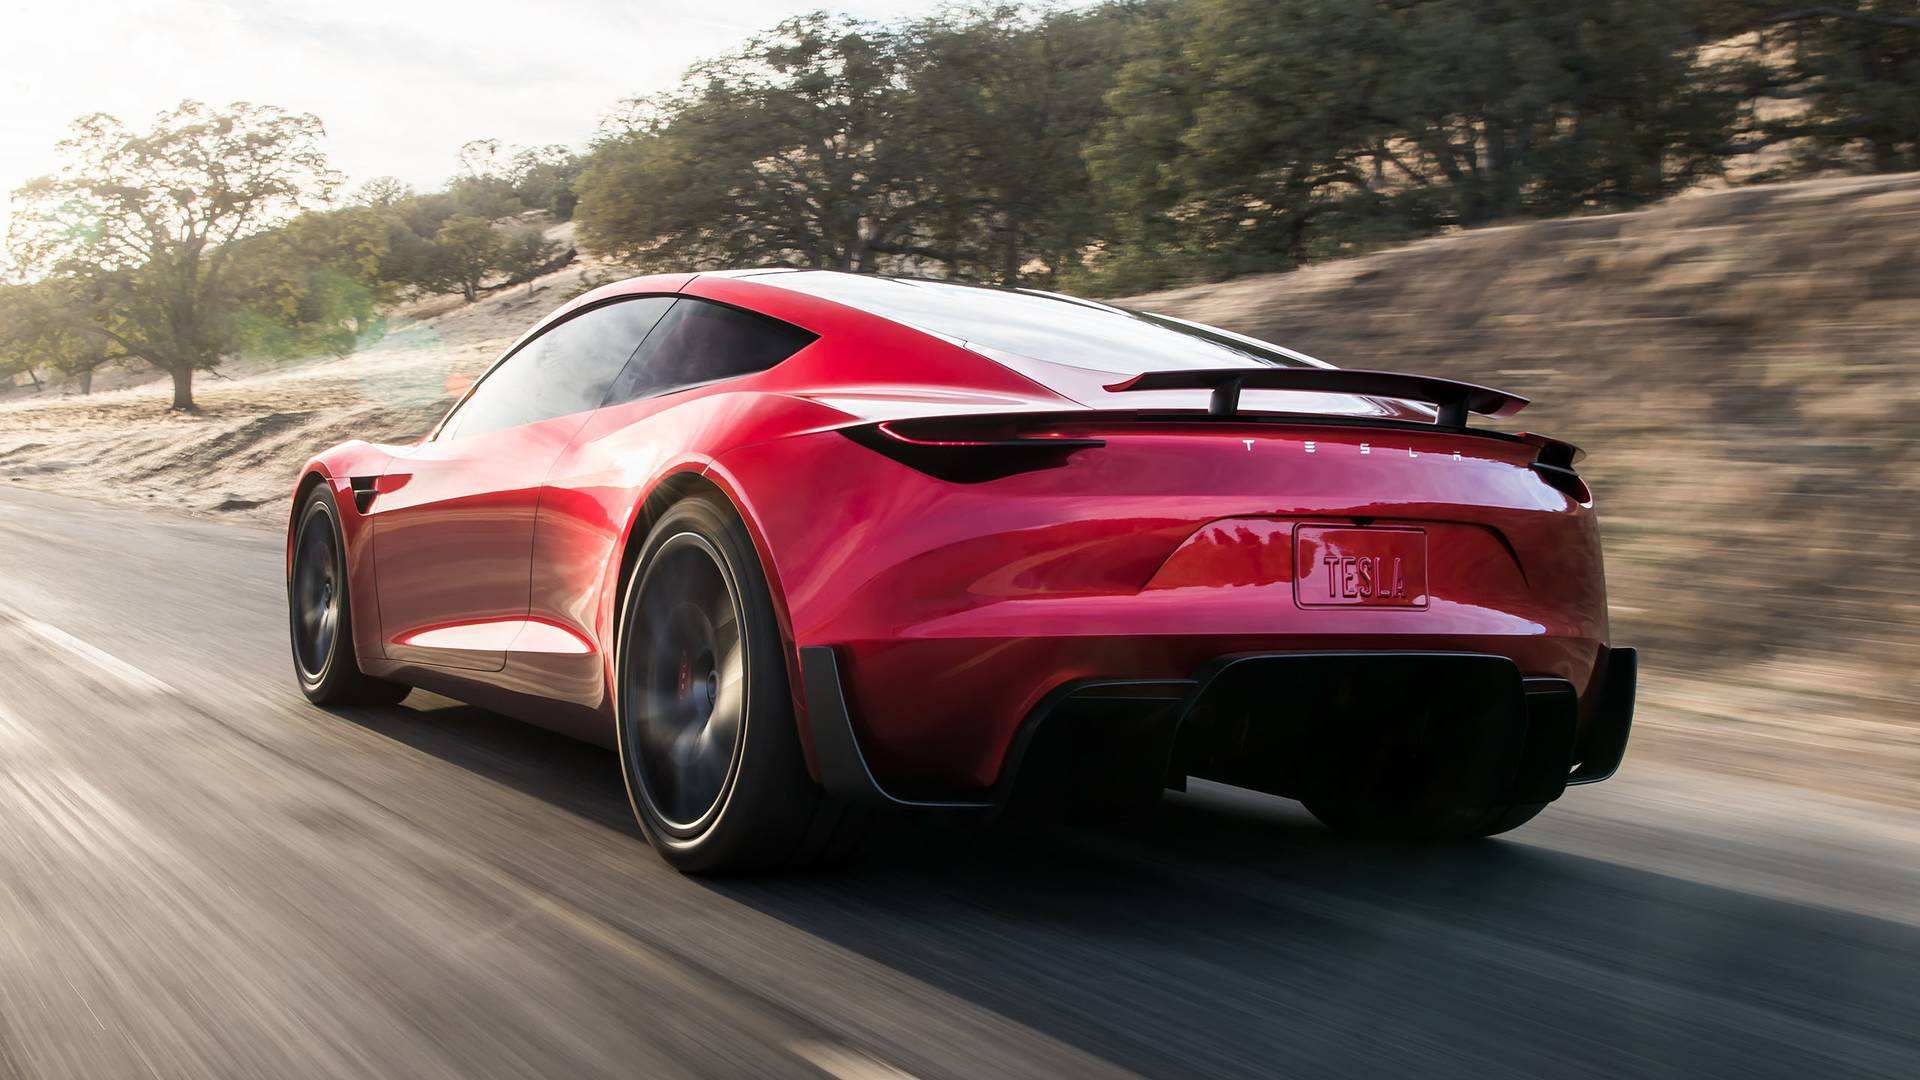 95 All New 2020 Tesla Roadster Weight Spesification by 2020 Tesla Roadster Weight